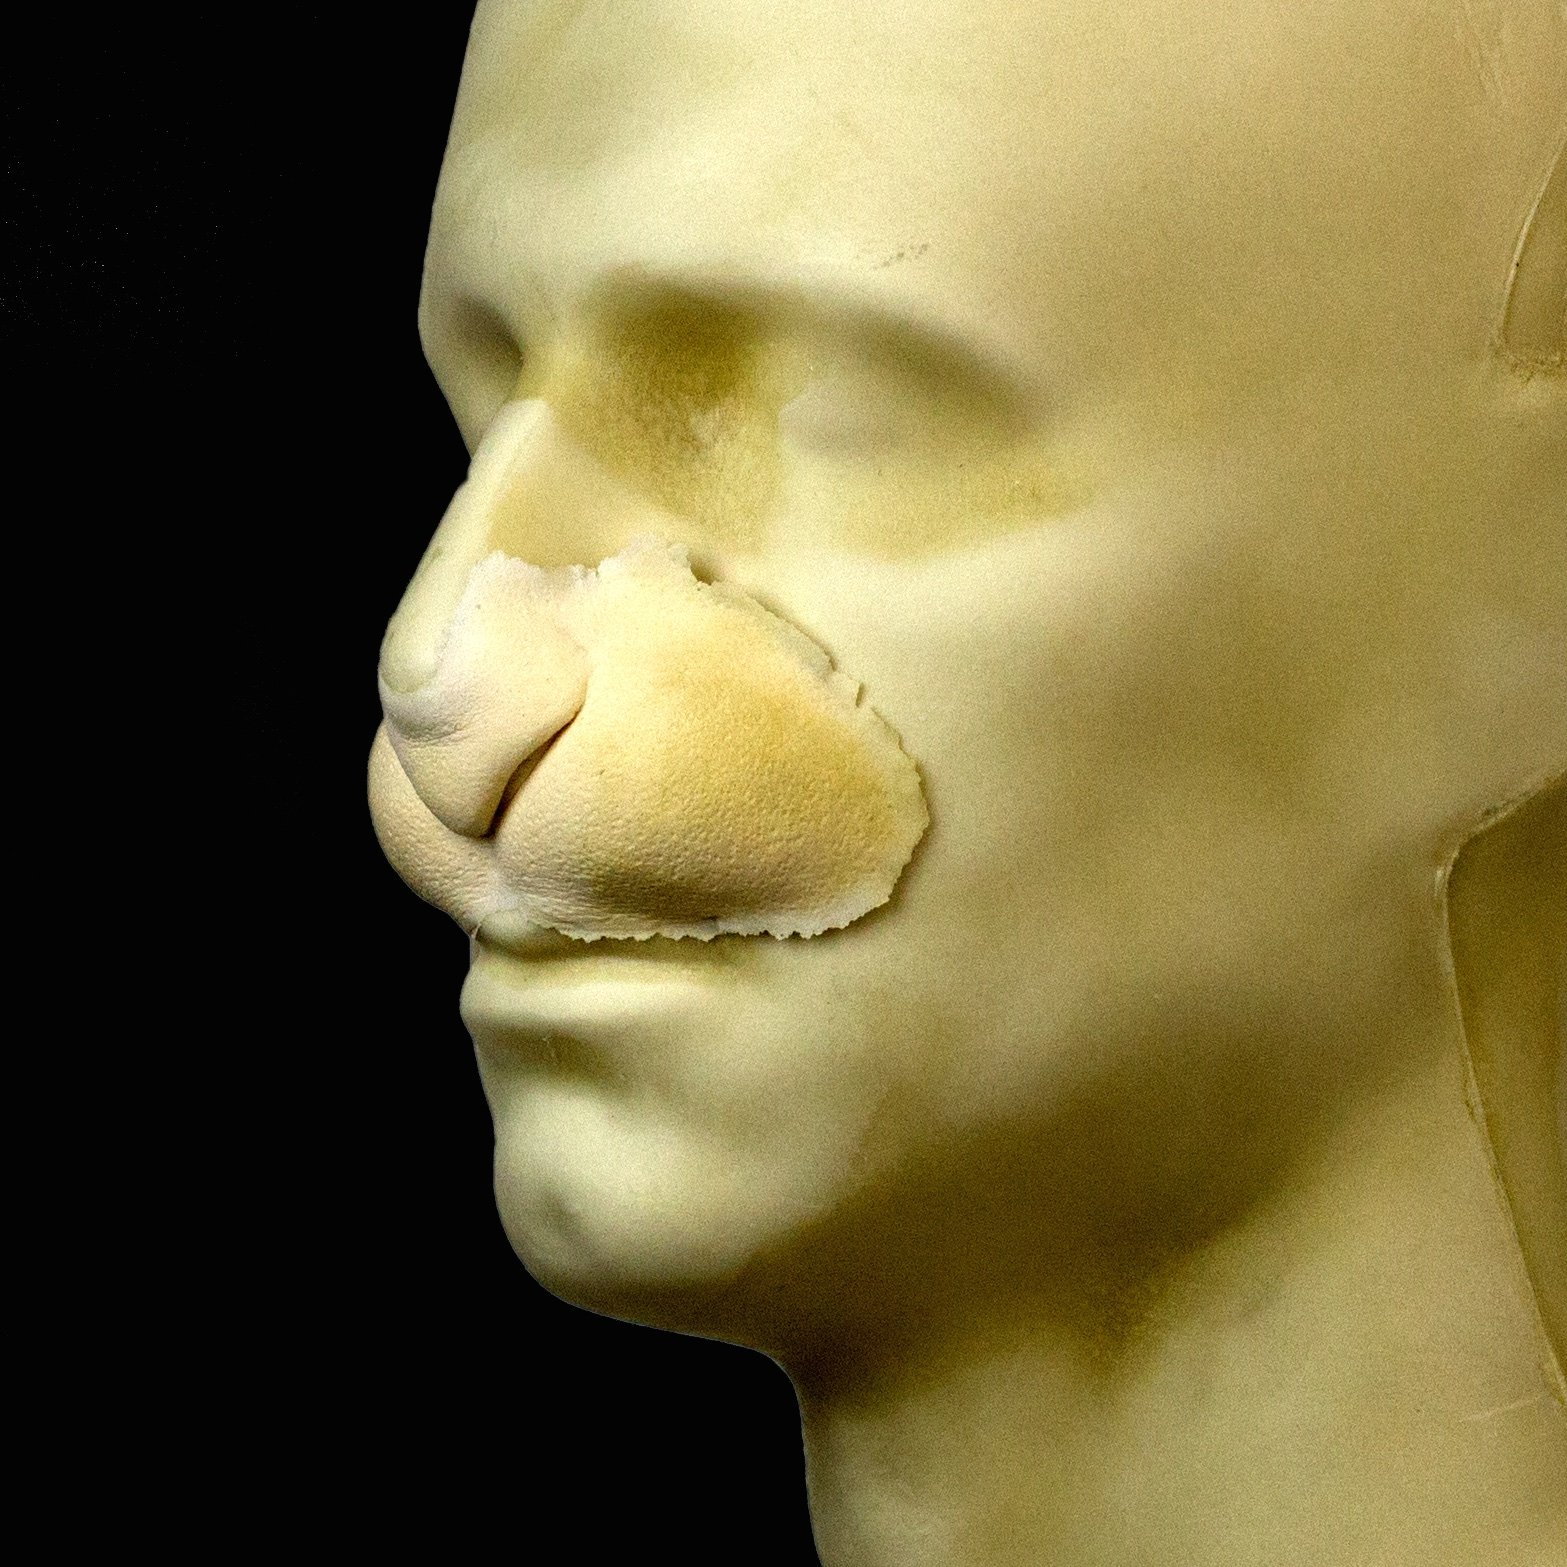 Rubber Wear Foam Latex Prosthetic - Rabbit Nose FRW-051 - Makeup and Theater FX